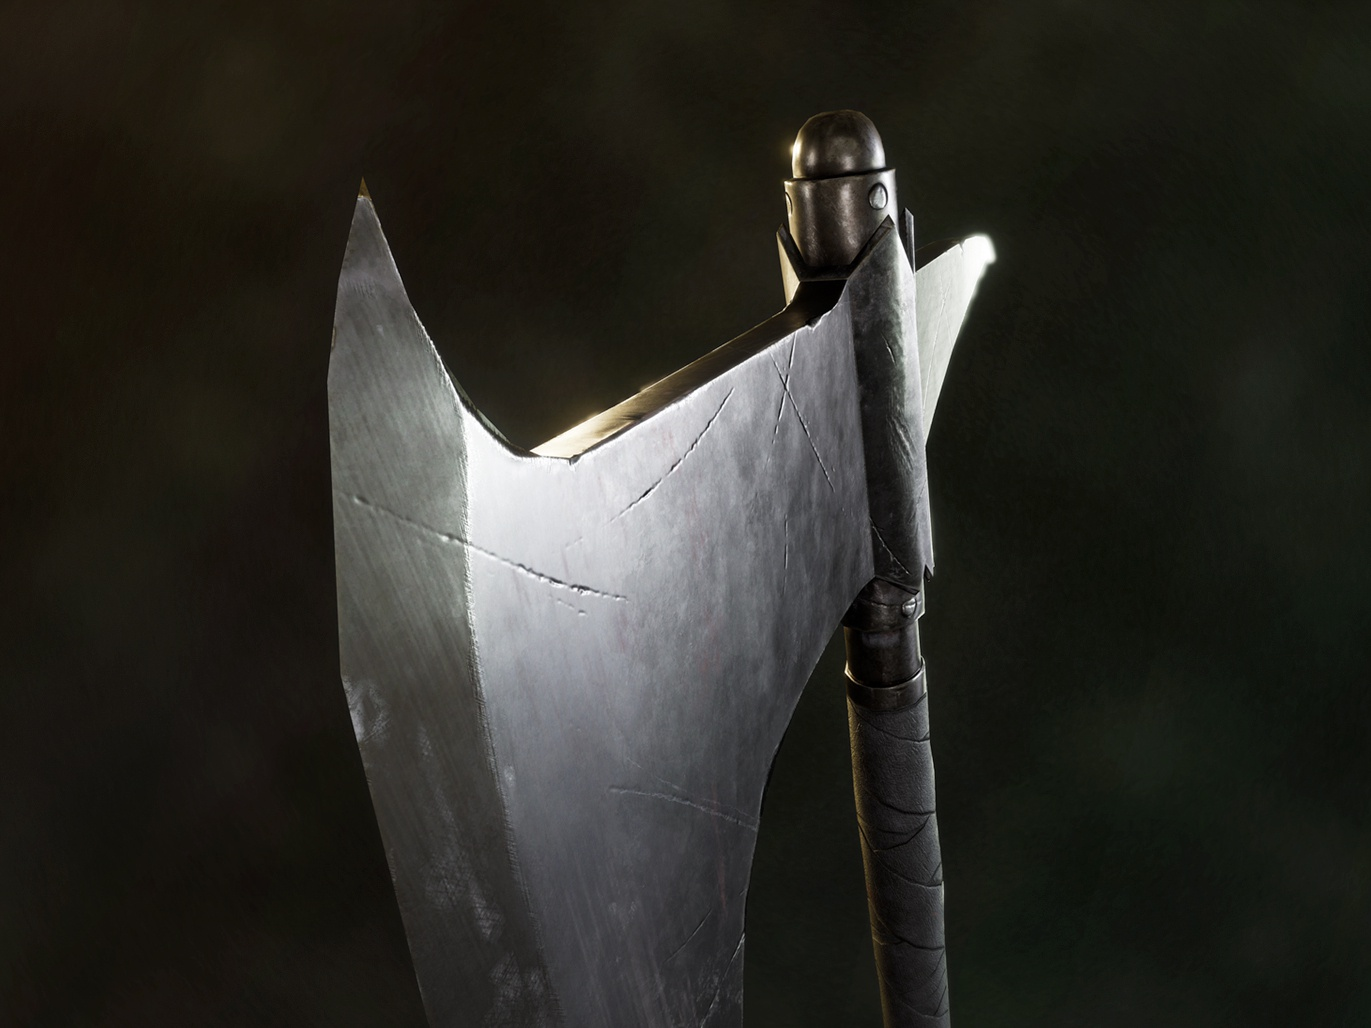 Dragonslayer's Crescent Axe - Dark Souls concept metallic prop design blender pbr 3drender 3d modeling cg art weapon graphic design cgi substance painter game art render 3dmodel 3d art 3d axe fantasy dirty dragon